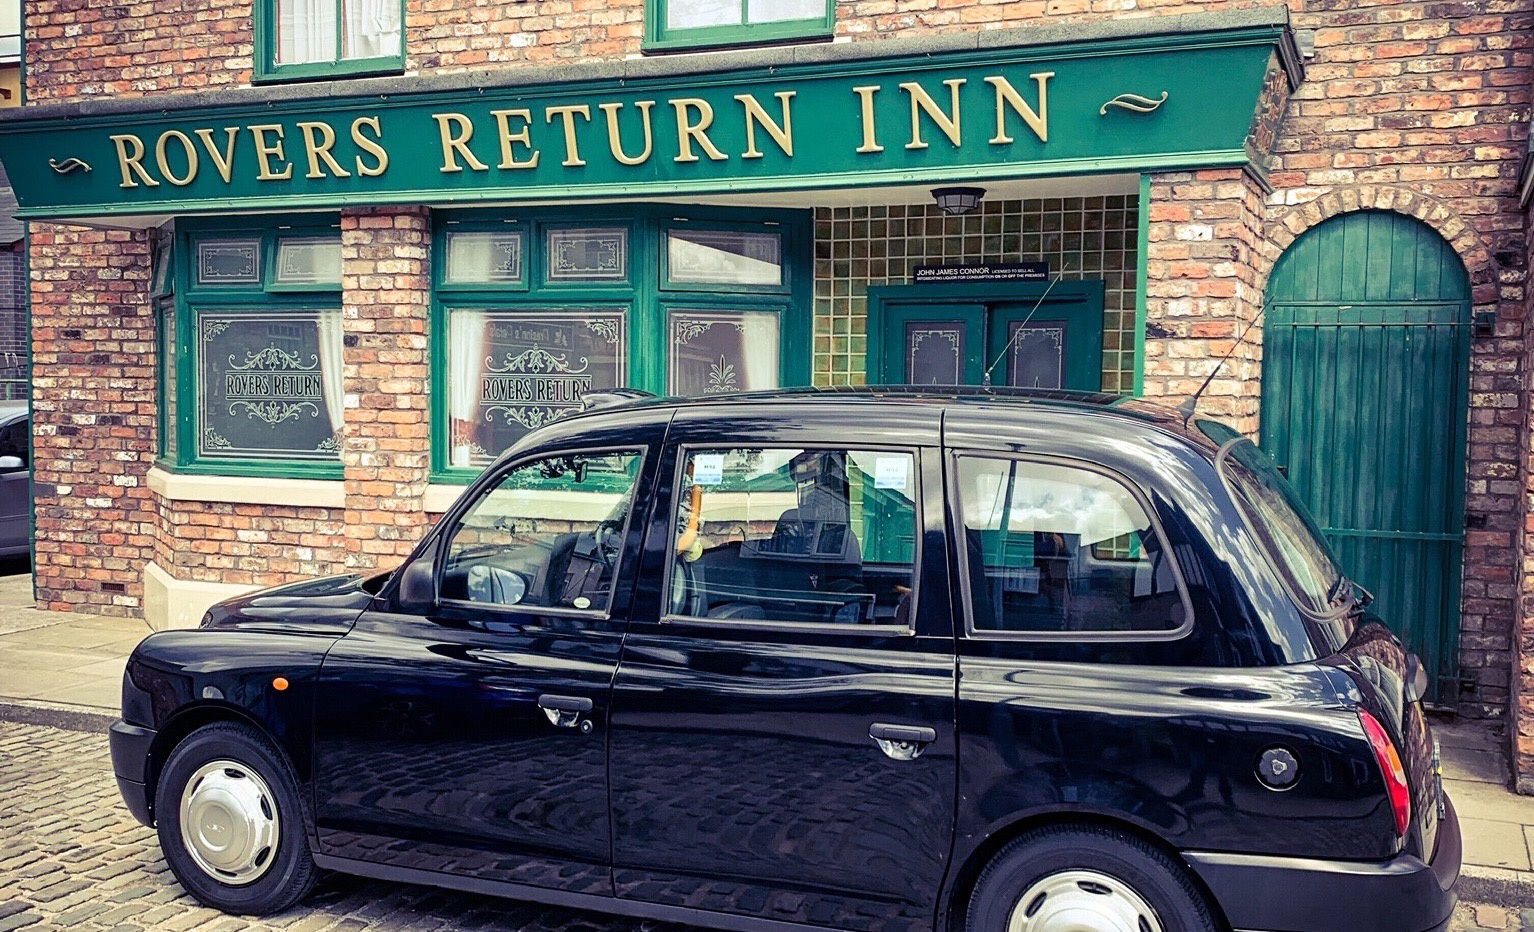 https://0501.nccdn.net/4_2/000/000/038/2d3/black-taxi-film-hire-prop-coronation-street-action-rovers-return-1534x932.jpg